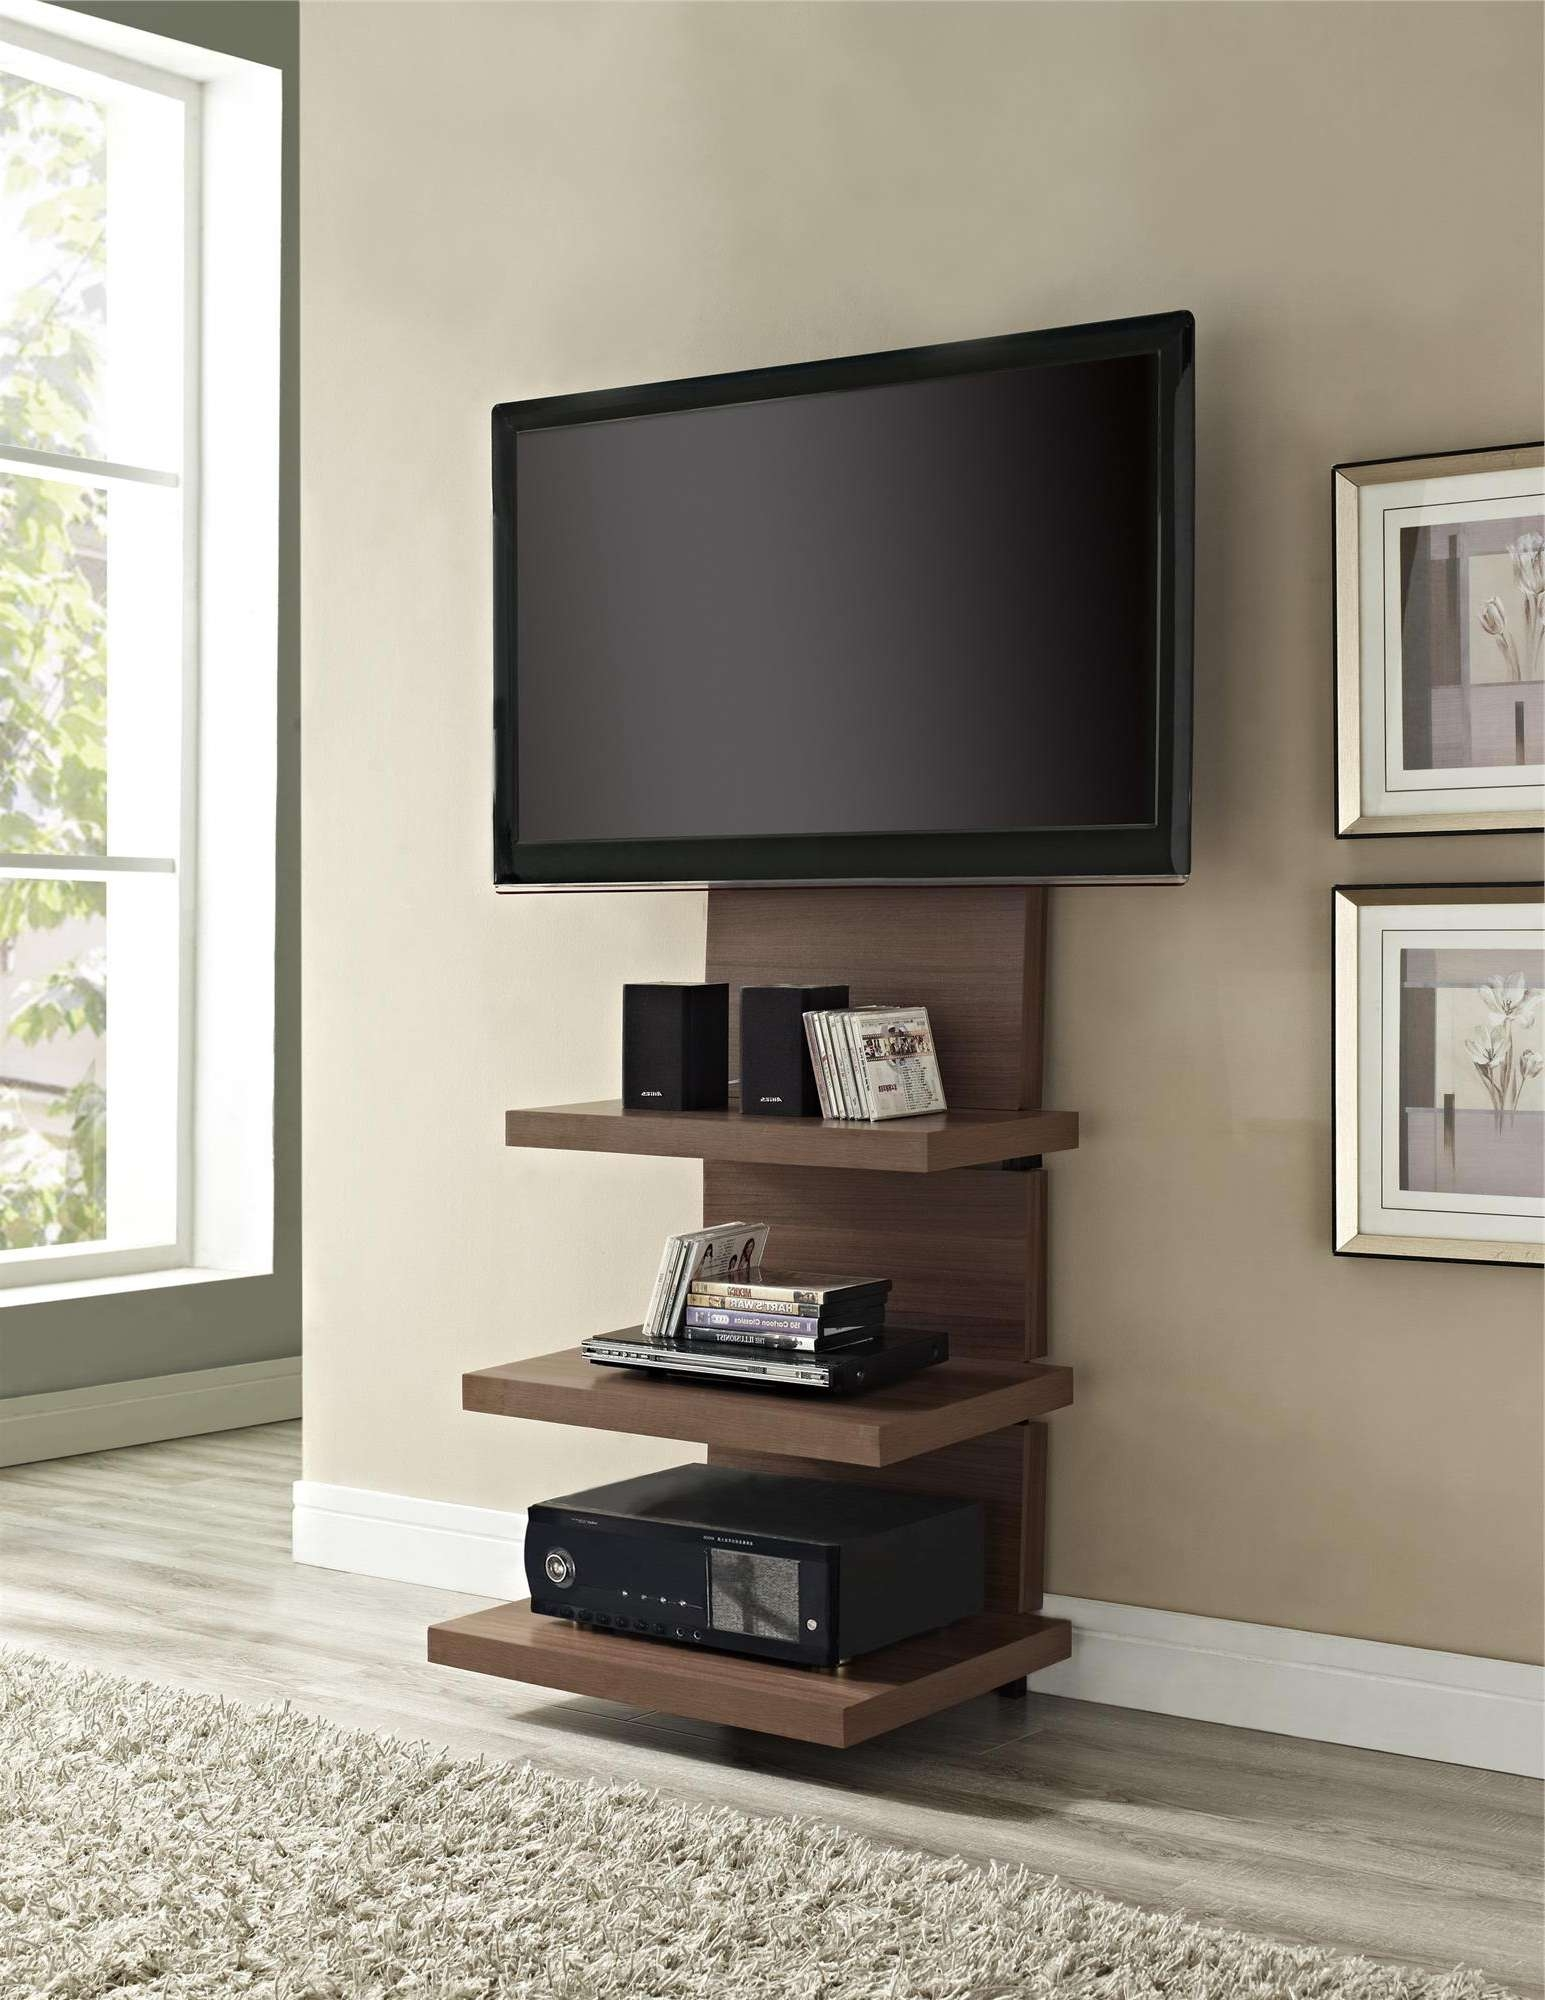 Tv Stands Recommendation | Homesfeed Throughout Stand Alone Tv Stands (View 20 of 20)